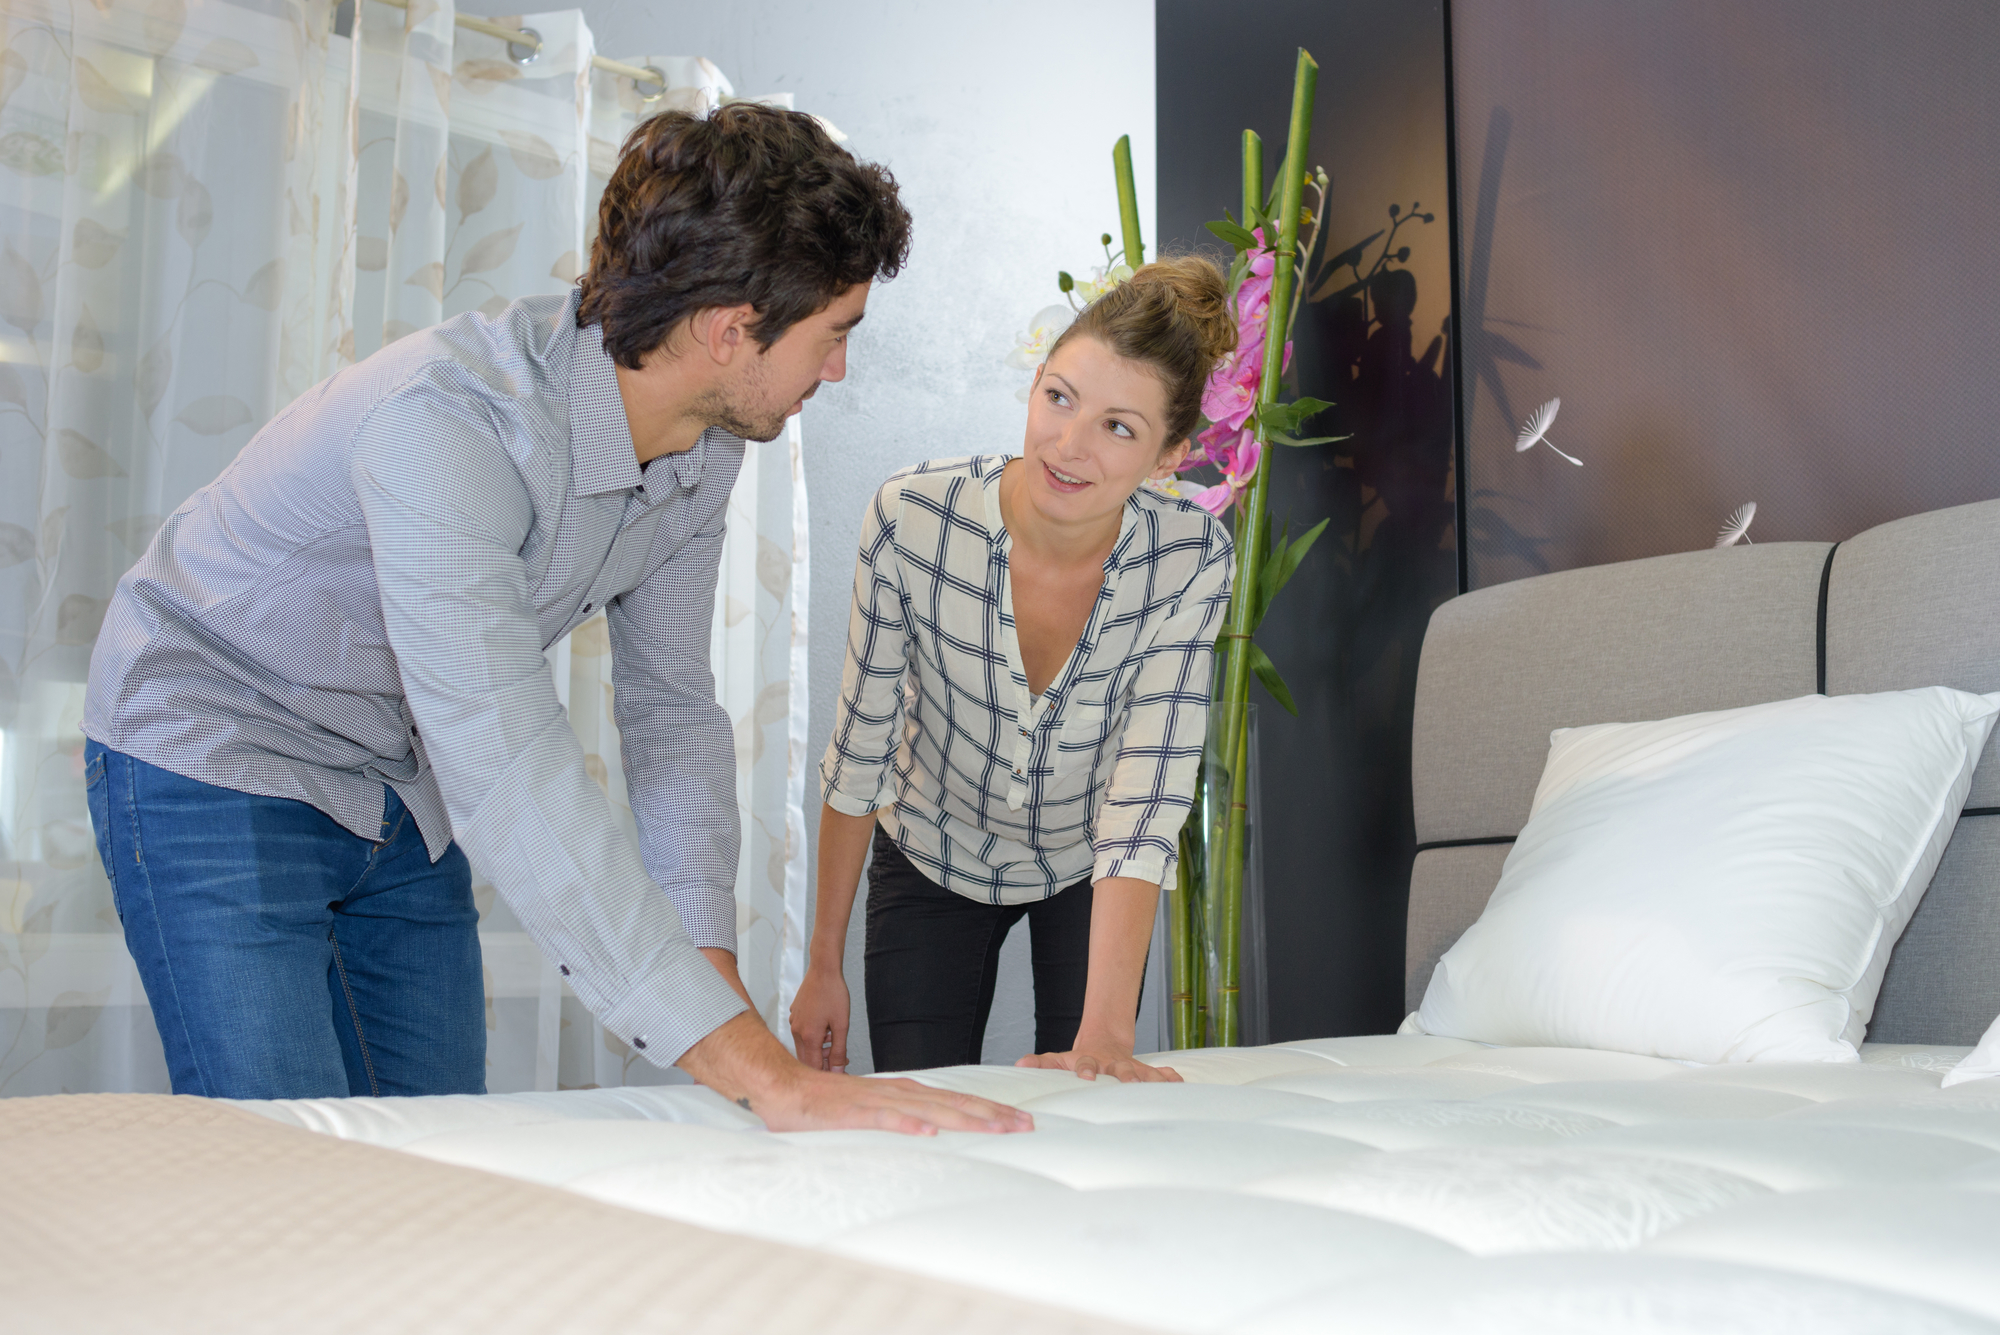 What You Need to Know About Replacing Your Mattress